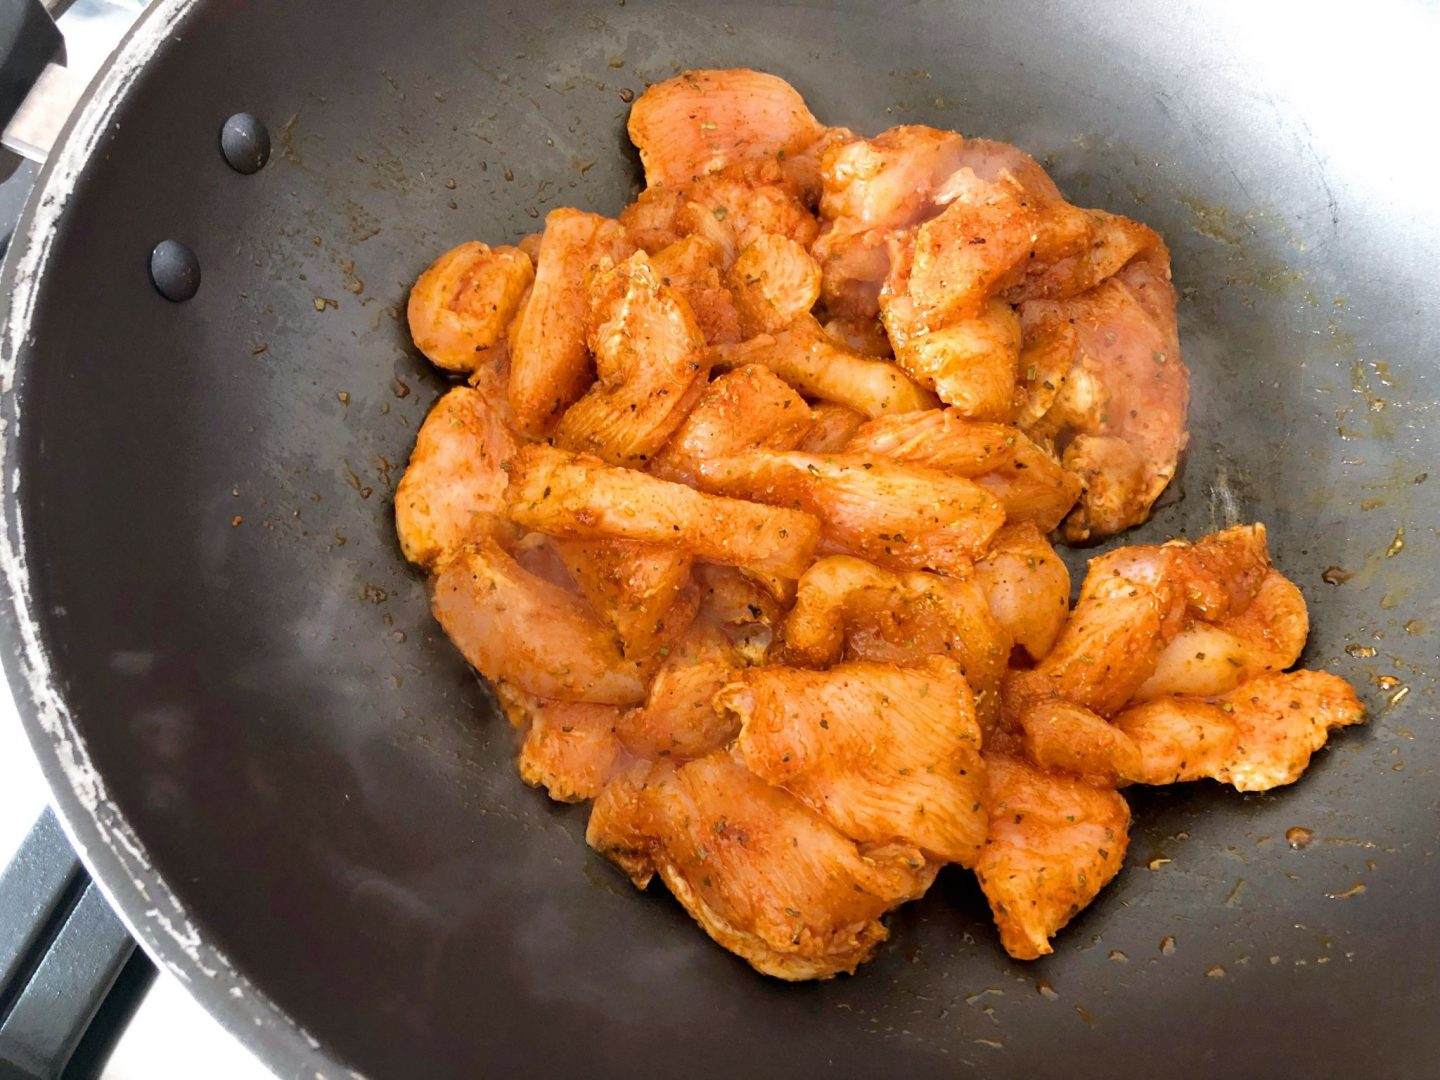 Chicken with Fajita Spice Mix